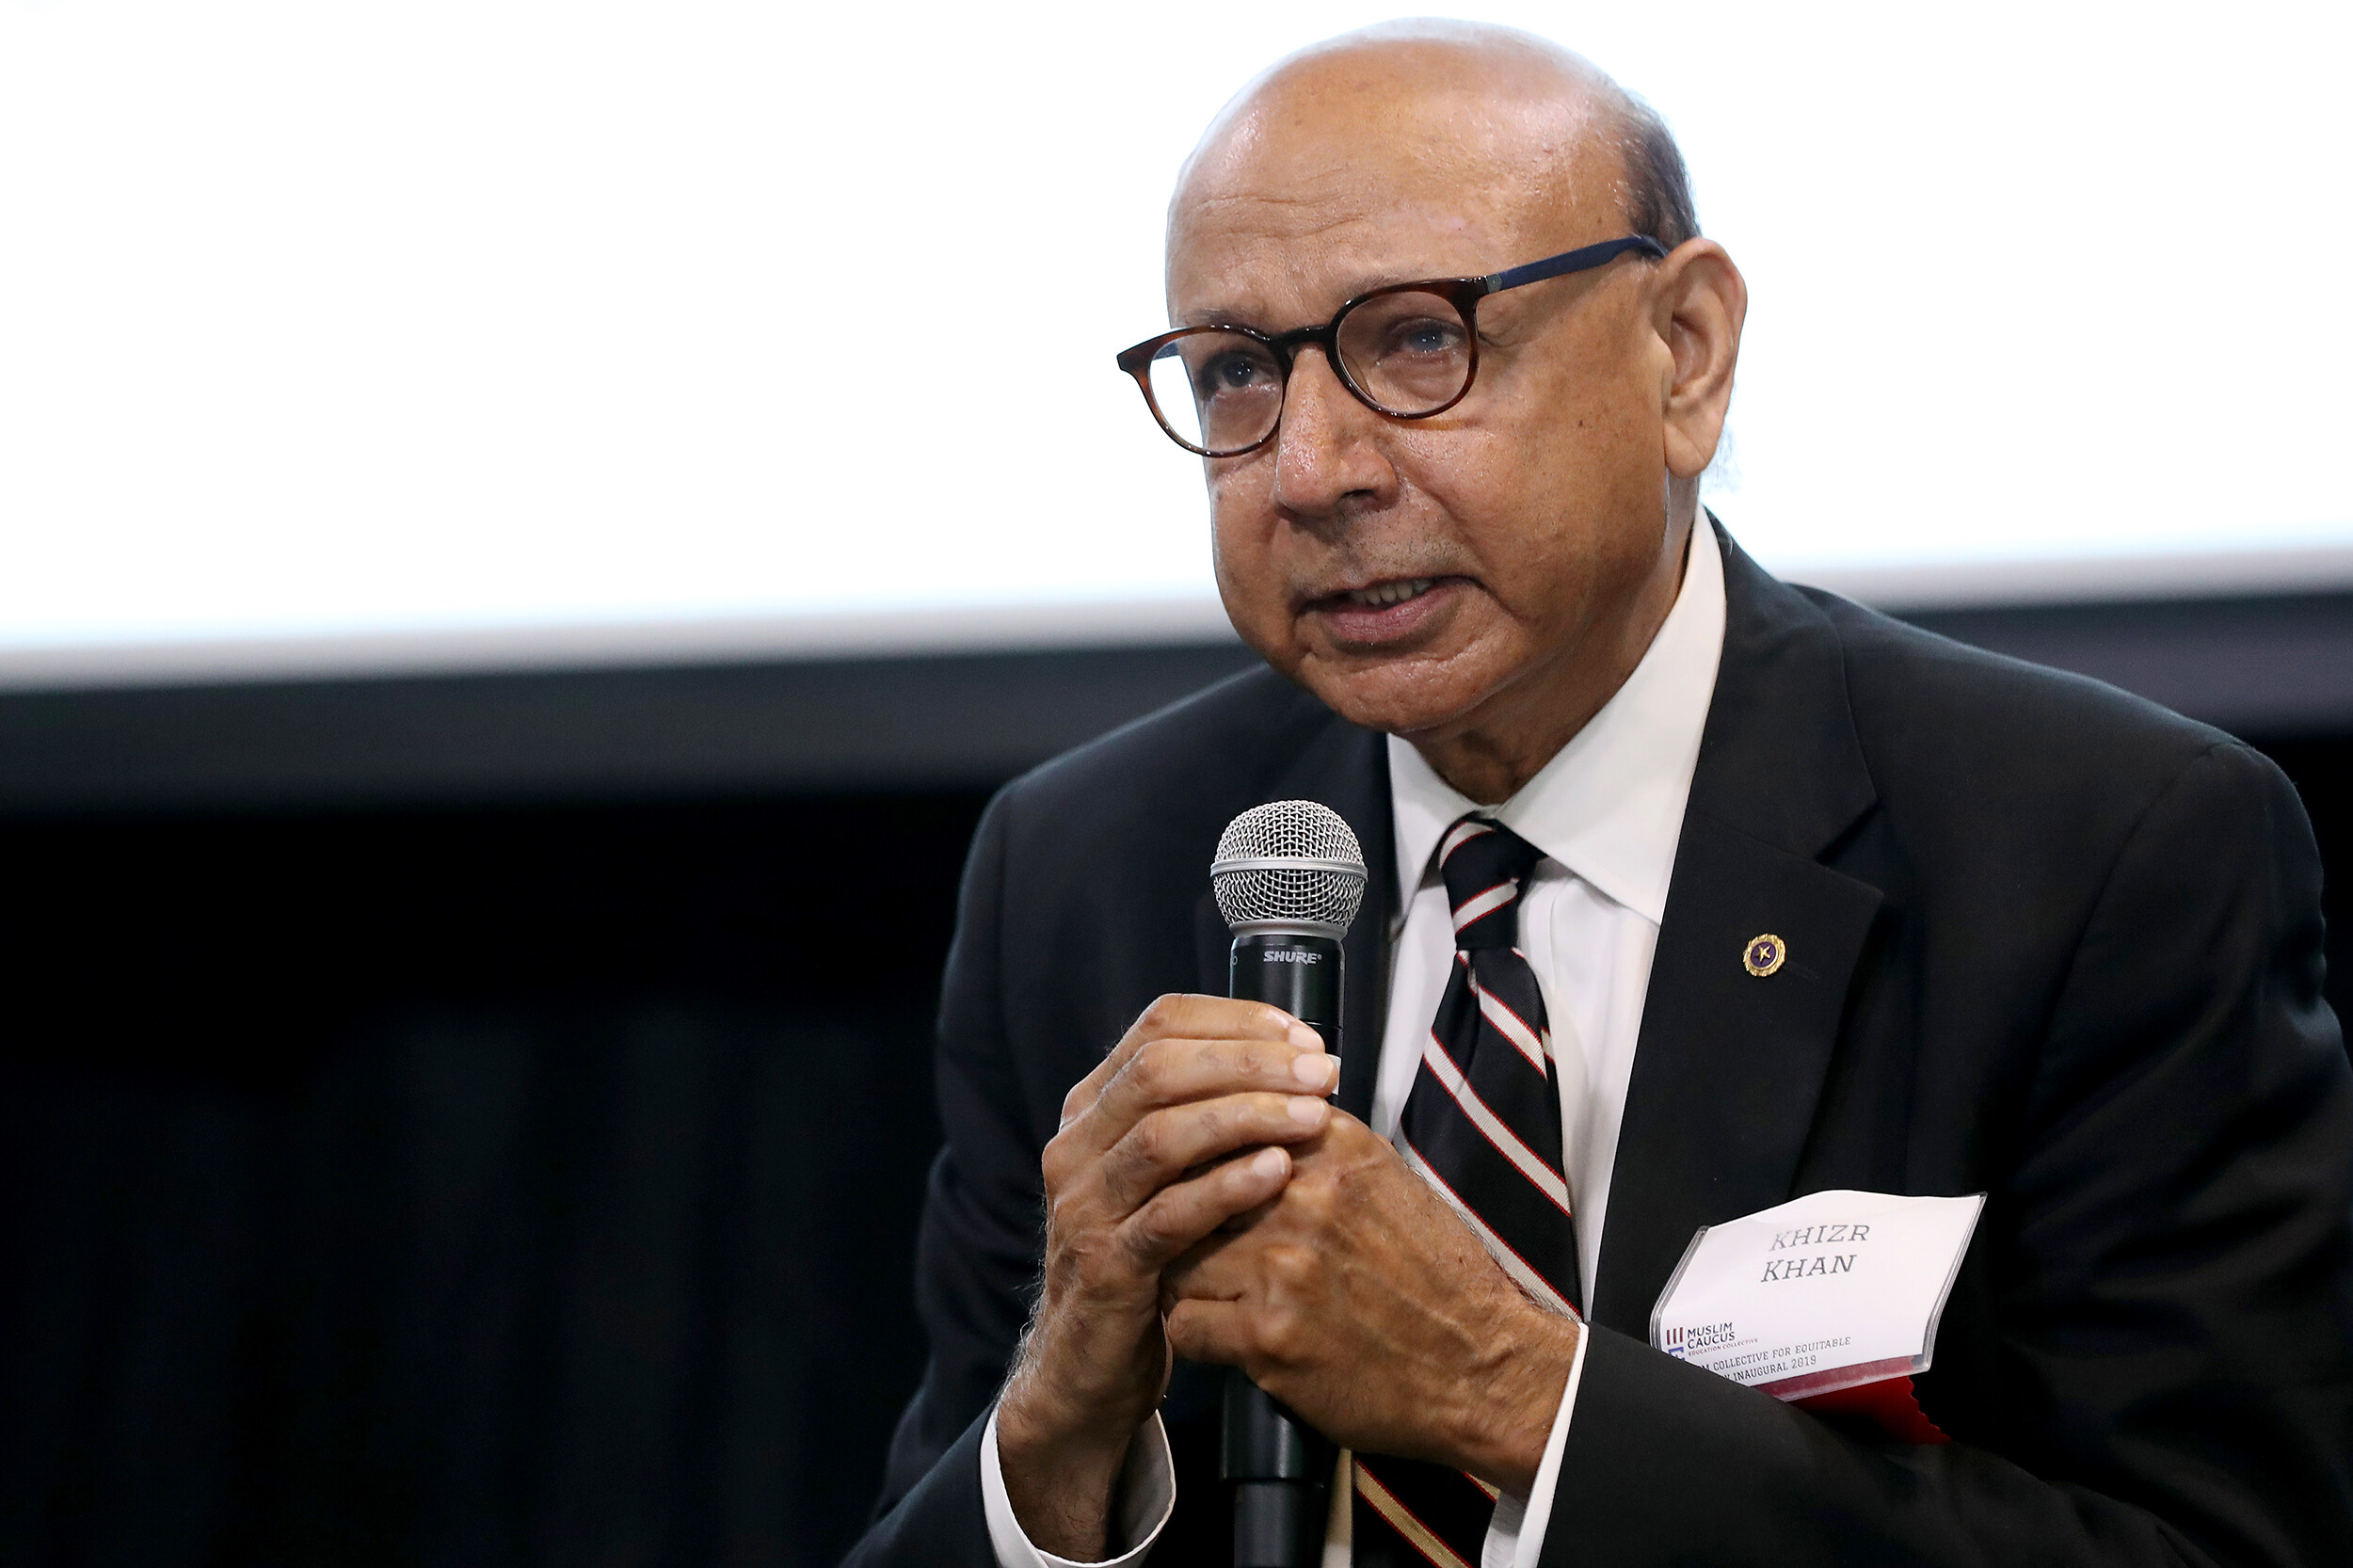 <i>Chip Somodevilla/Getty Images/FILE</i><br/>President Joe Biden announced that he was appointing Khizr Khan